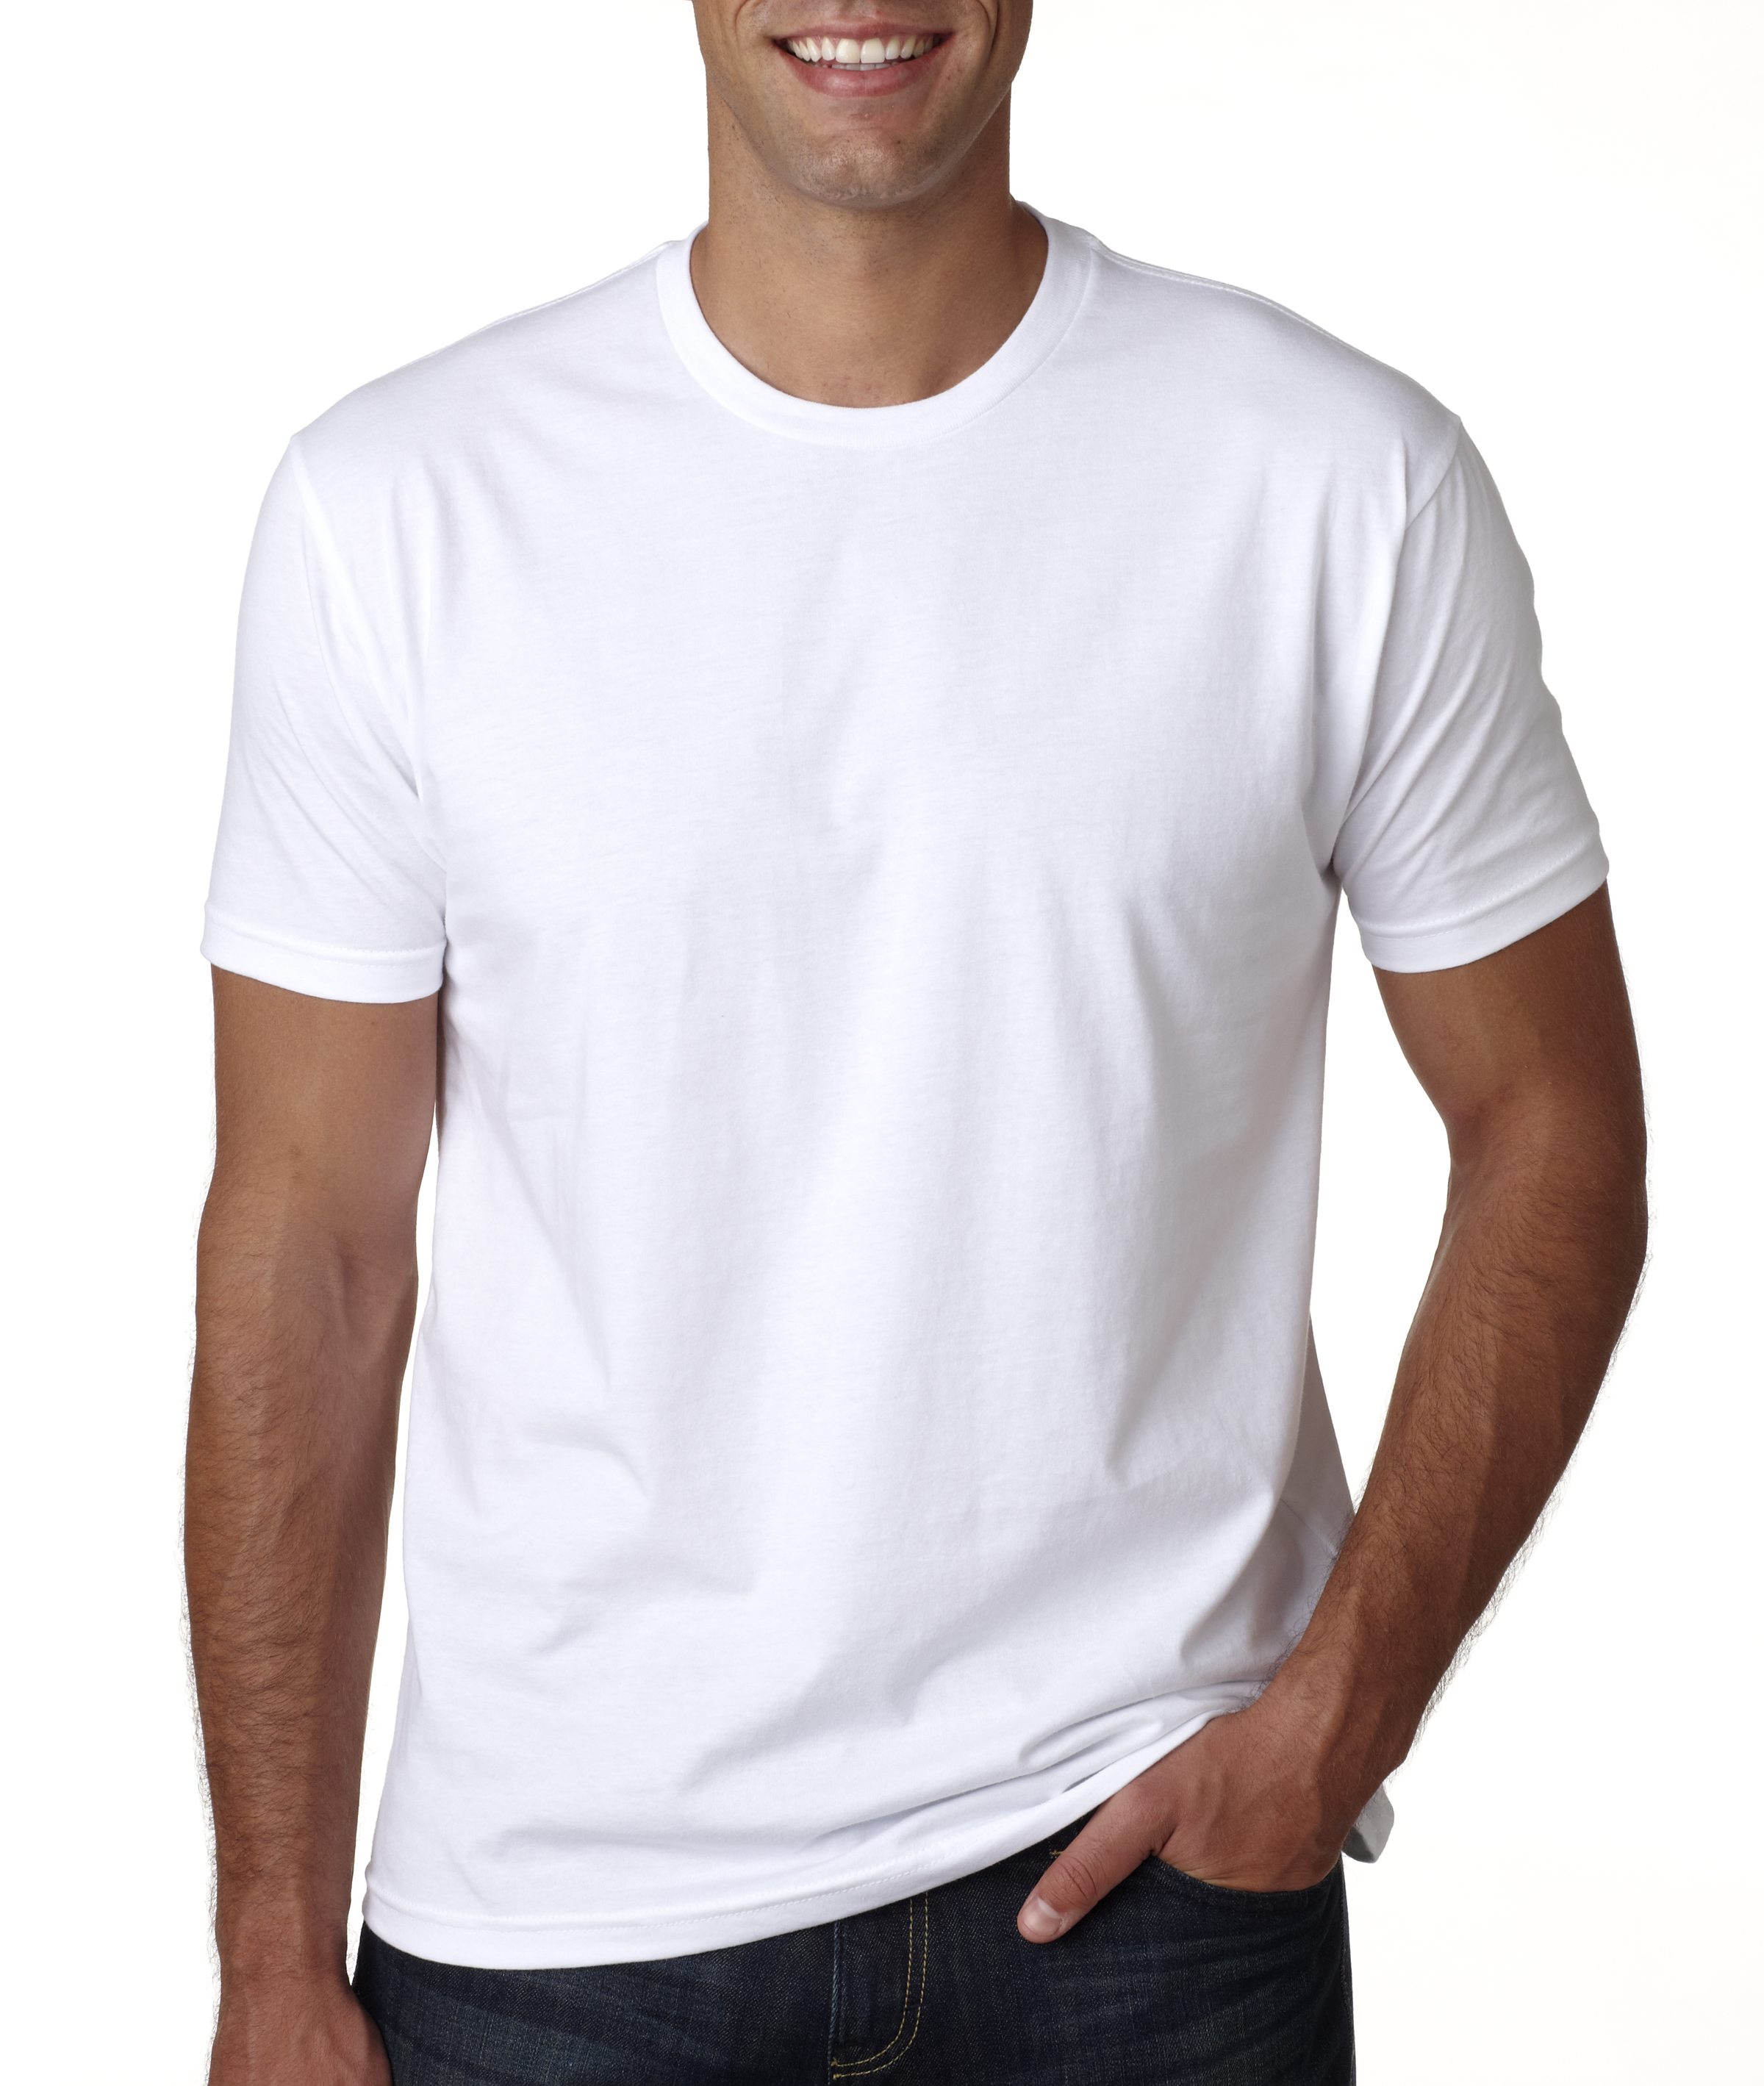 50 custom printed white t shirts on storenvy